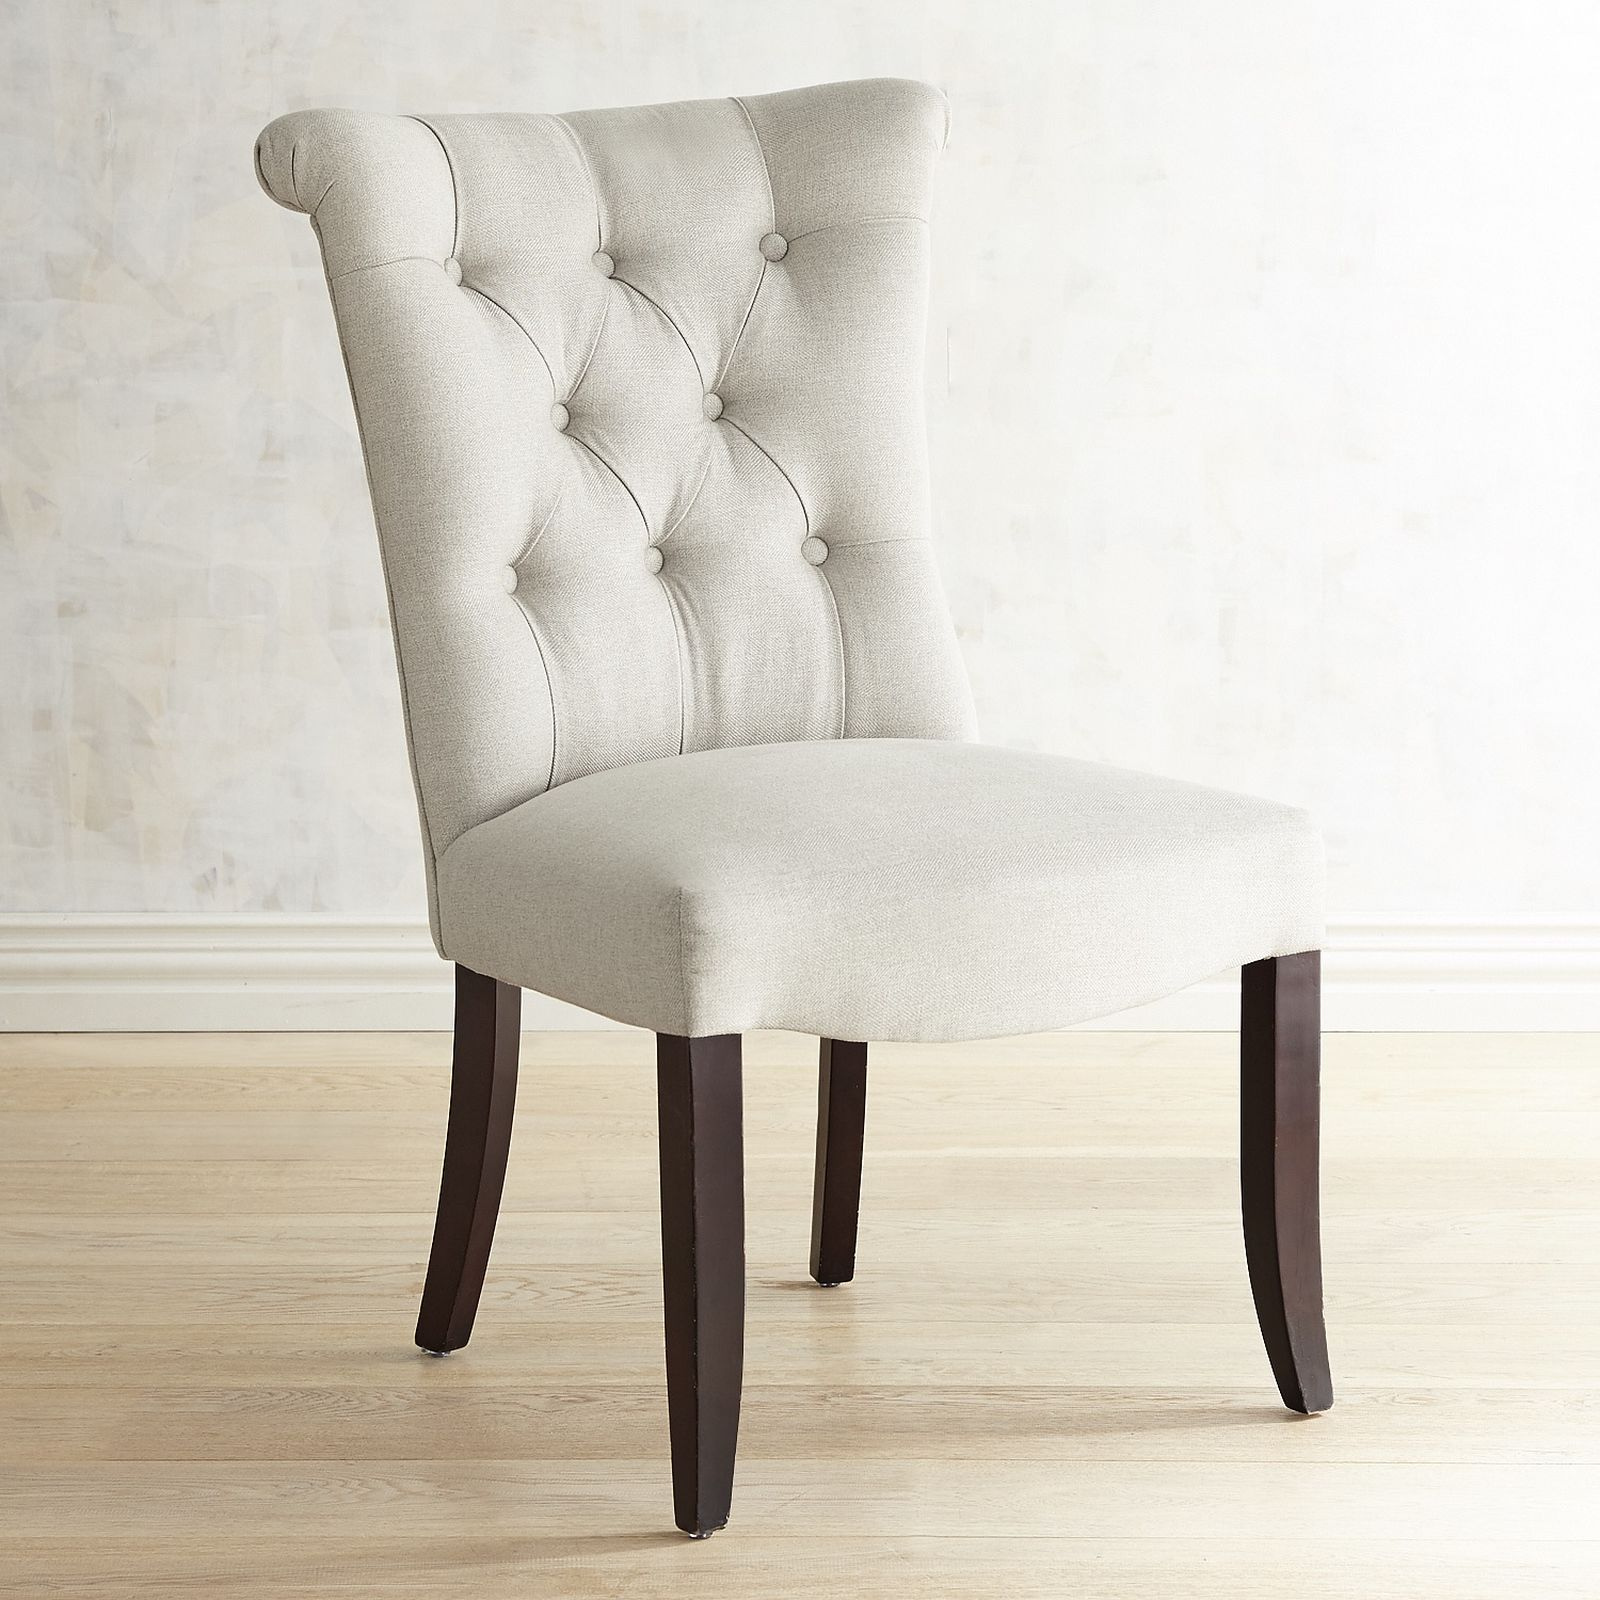 Colette Flax Dining Chair with Espresso Legs | Pier 1 Imports